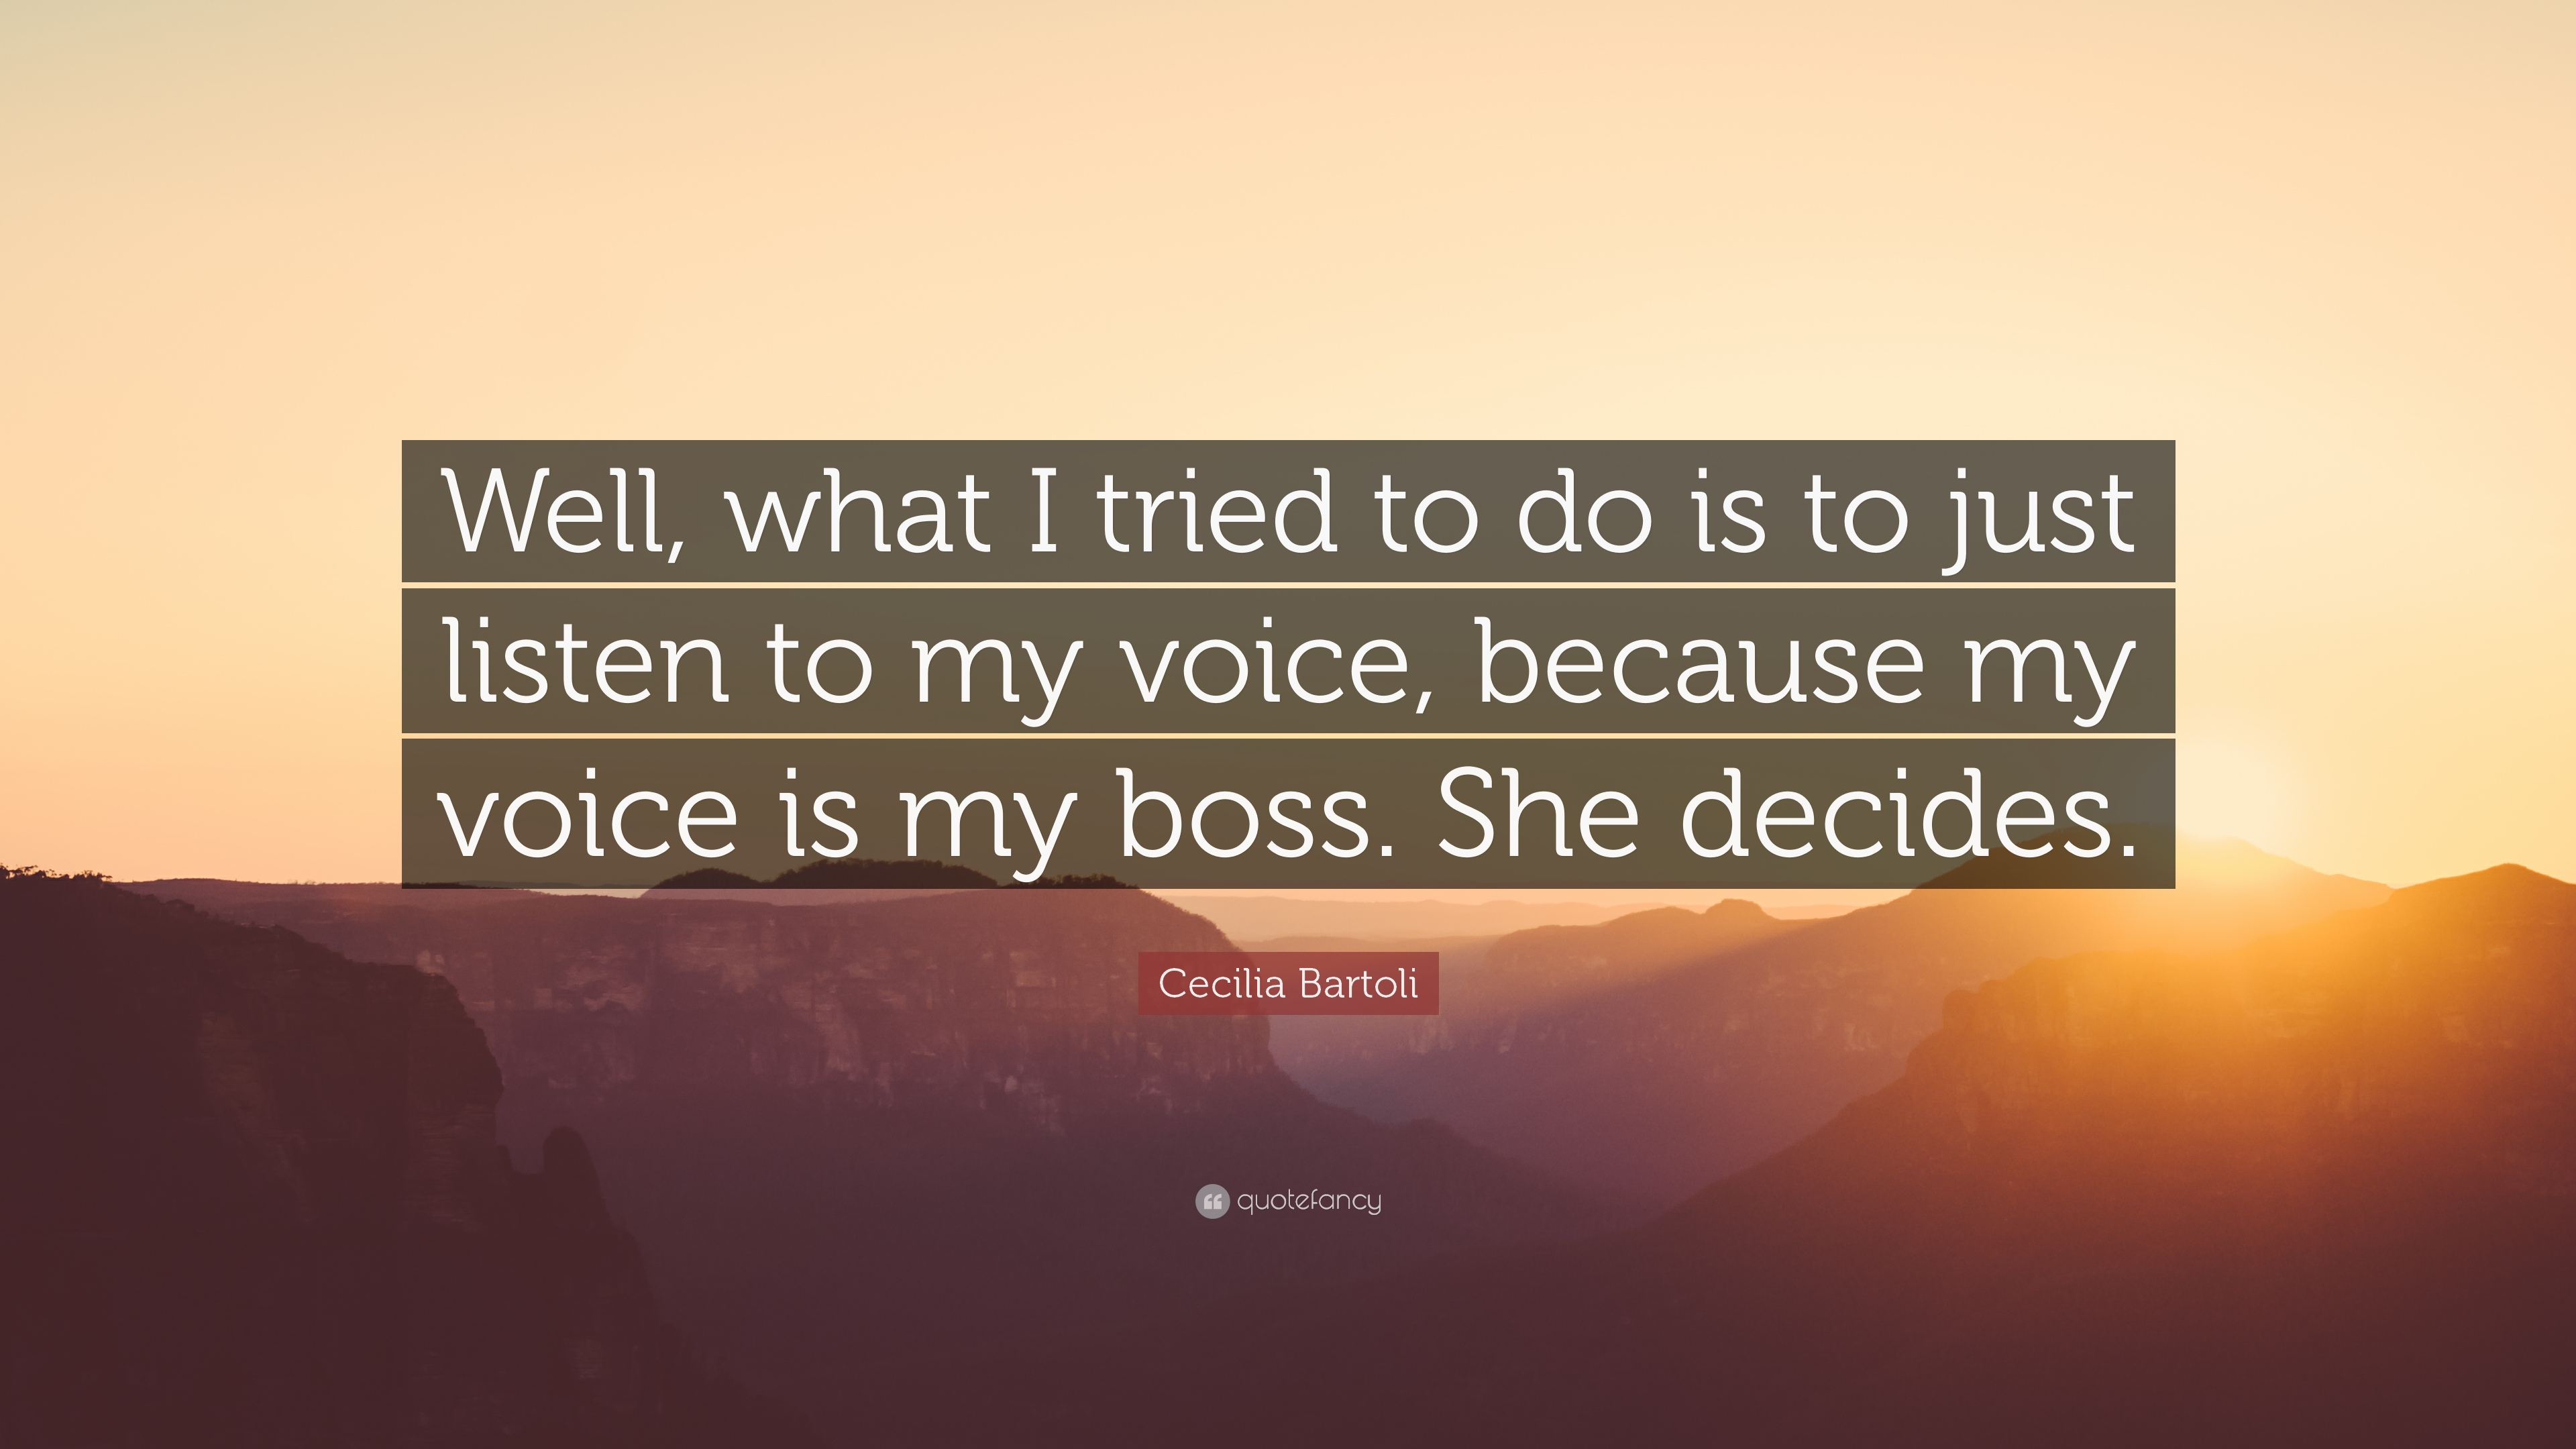 cecilia bartoli quote well what i tried to do is to just listen cecilia bartoli quote well what i tried to do is to just listen